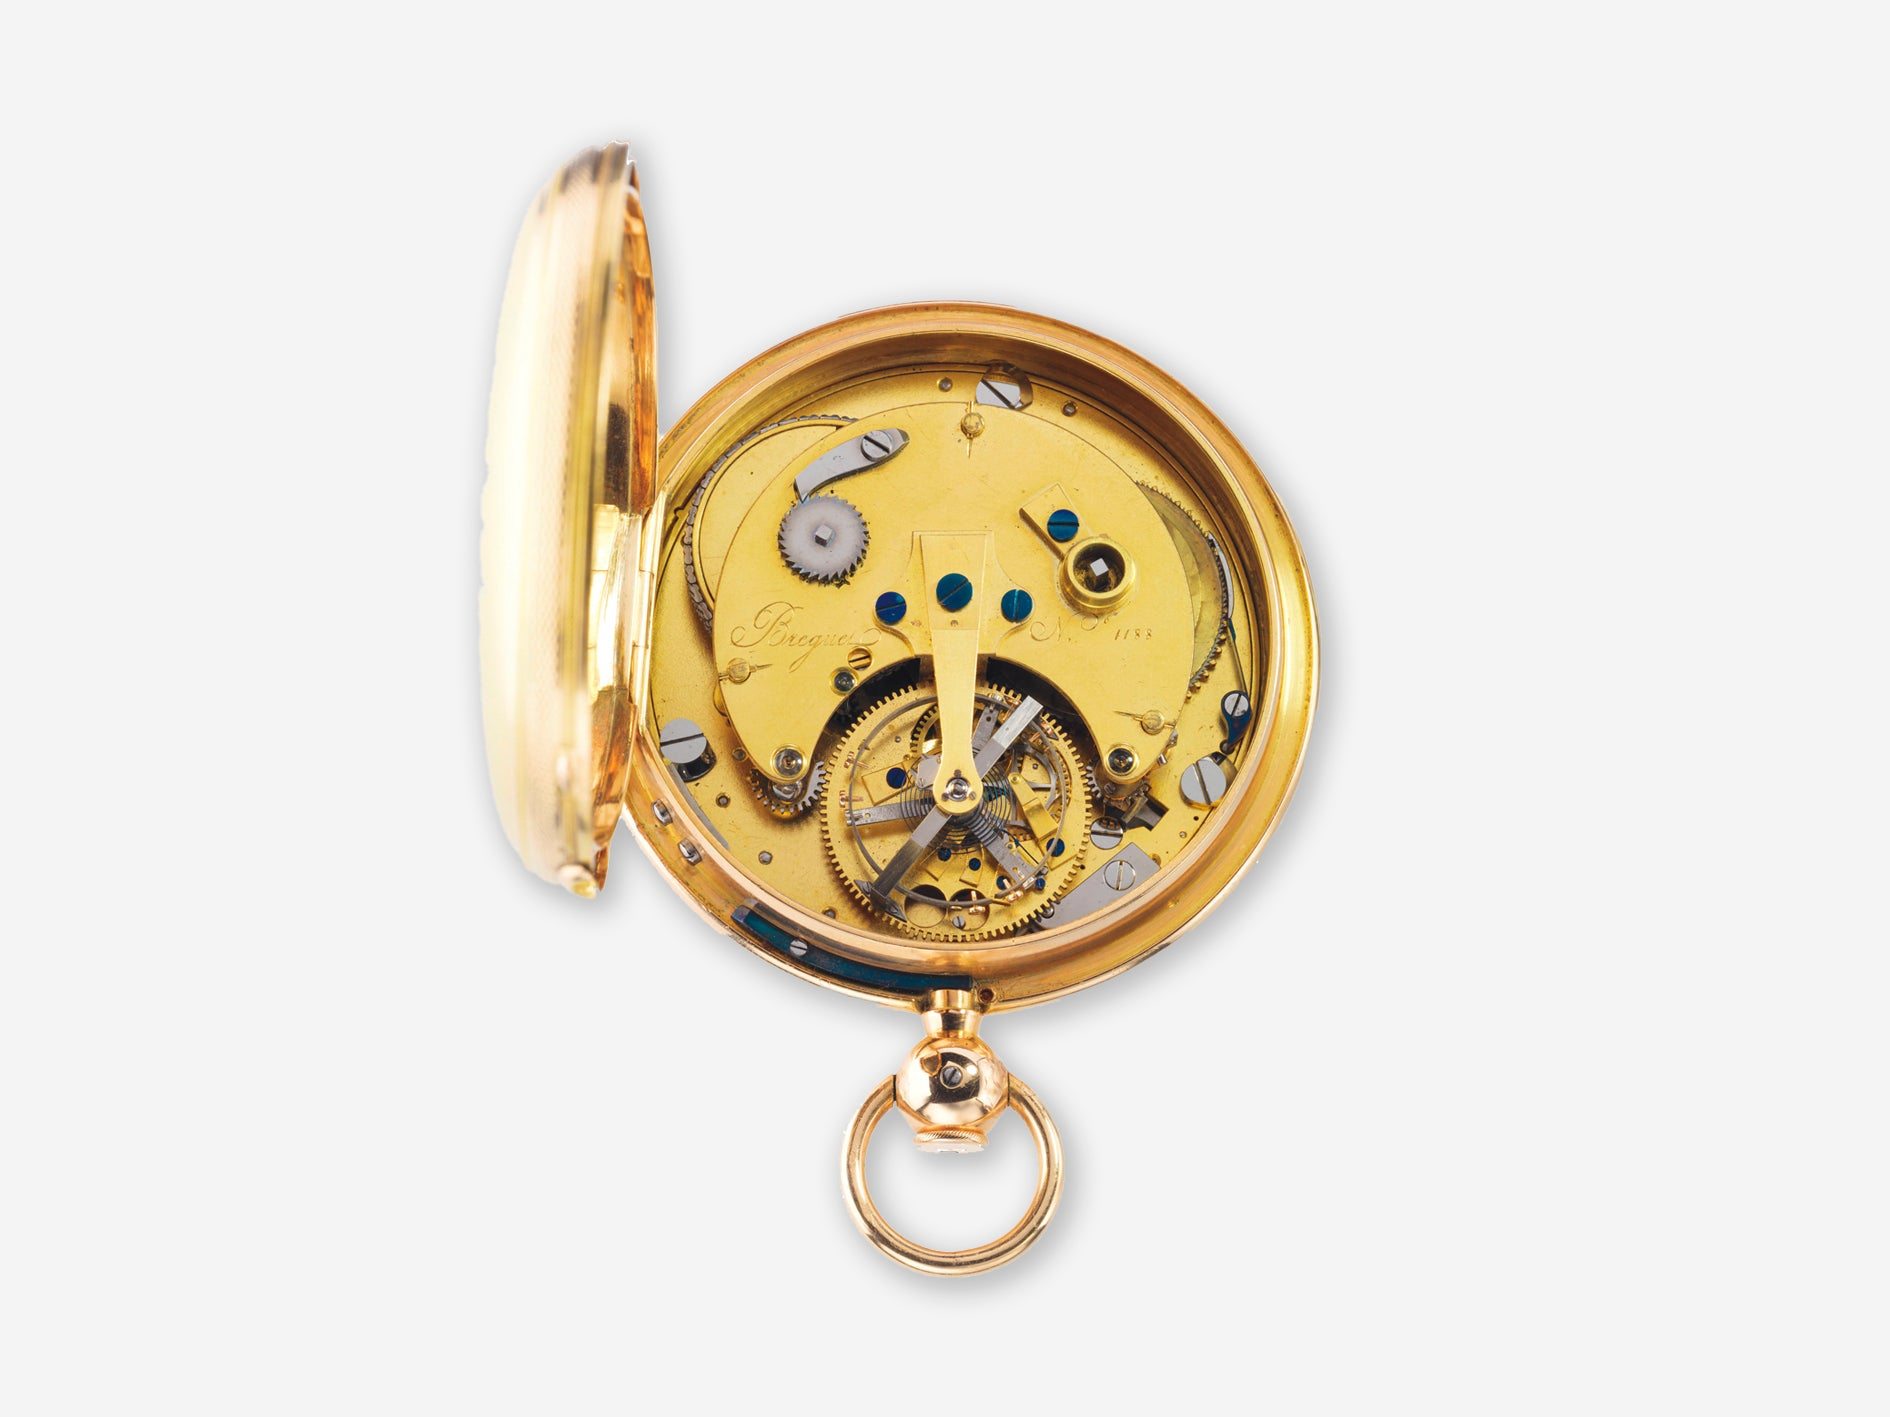 Abrahm-Louis Breguet No 1188 tourbillon with natural escapement